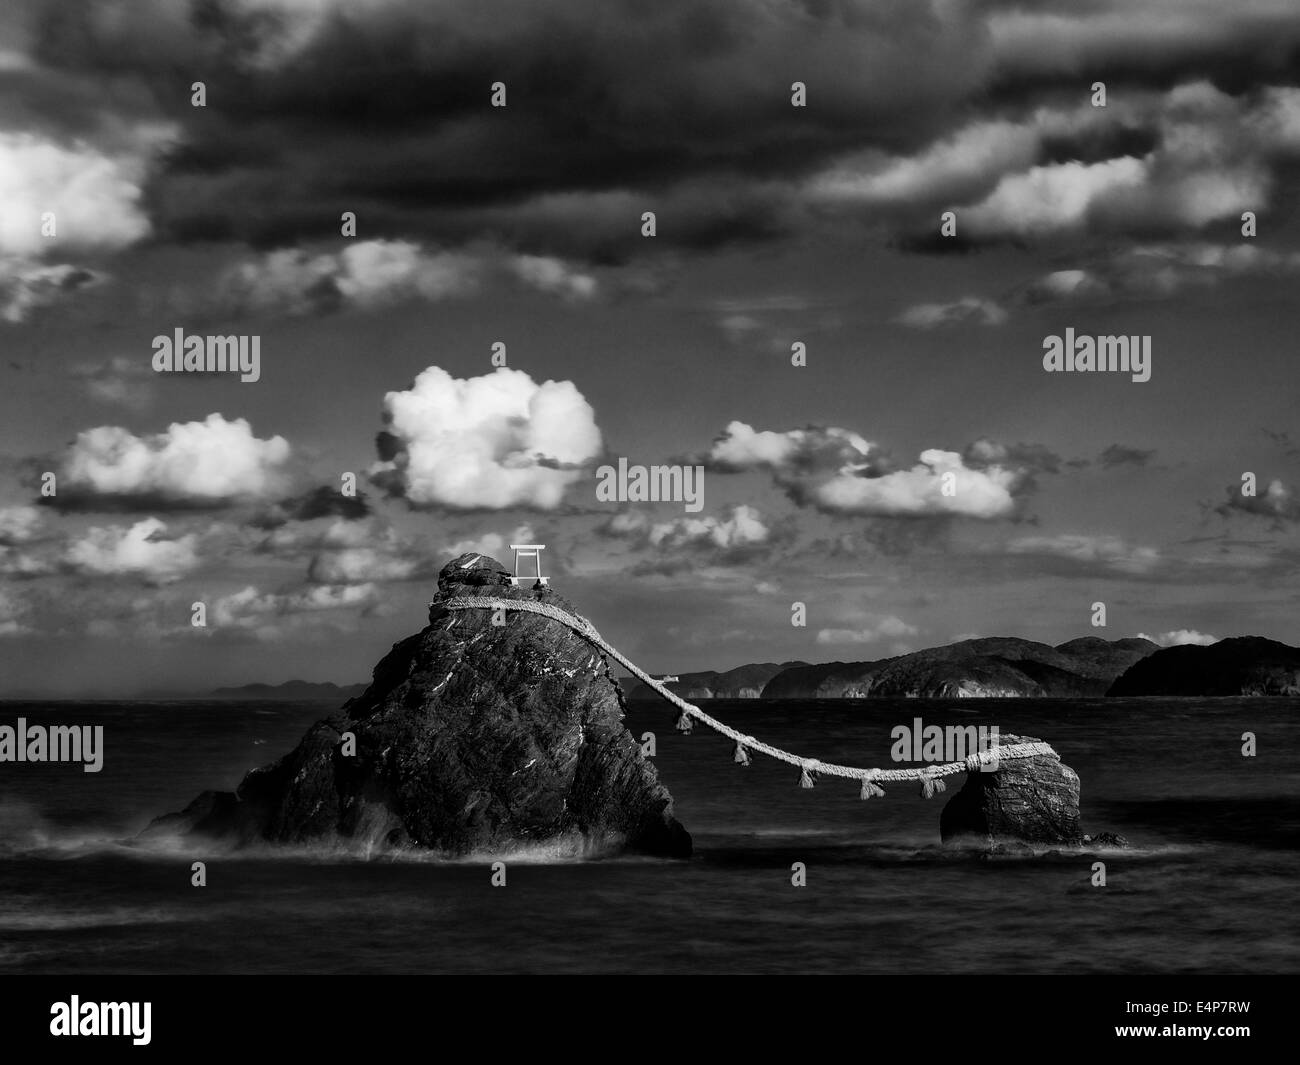 Meoto Iwa, The Married Rocks in Futami, Mie, Japan, in Monochrome - Stock Image